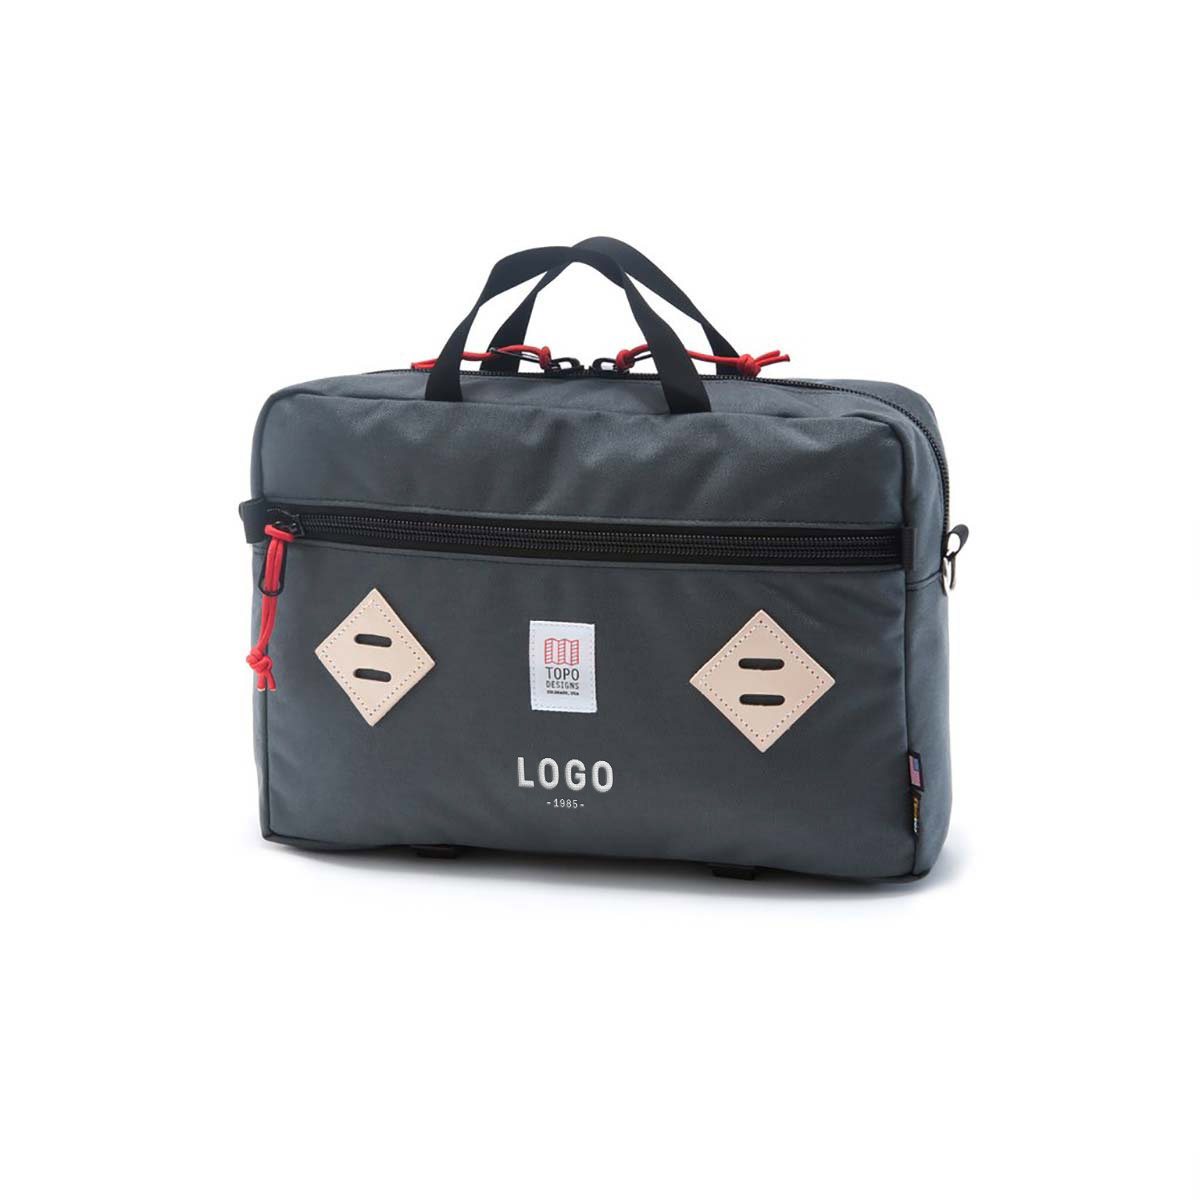 130165 mountain convertible briefcase one location embroidered